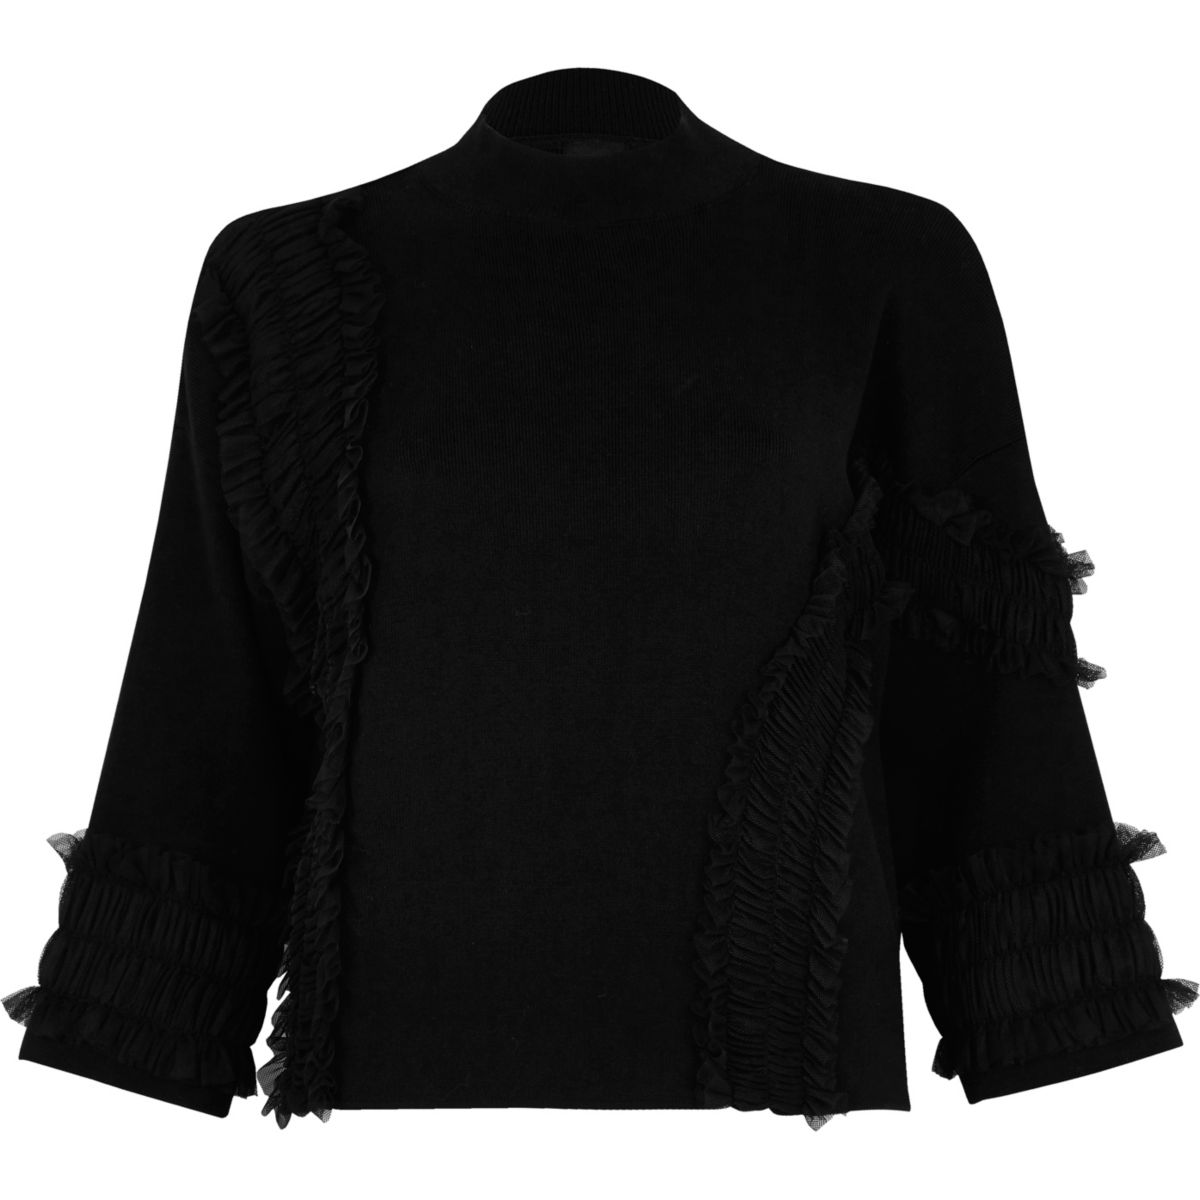 Black tulle trim high neck knit jumper